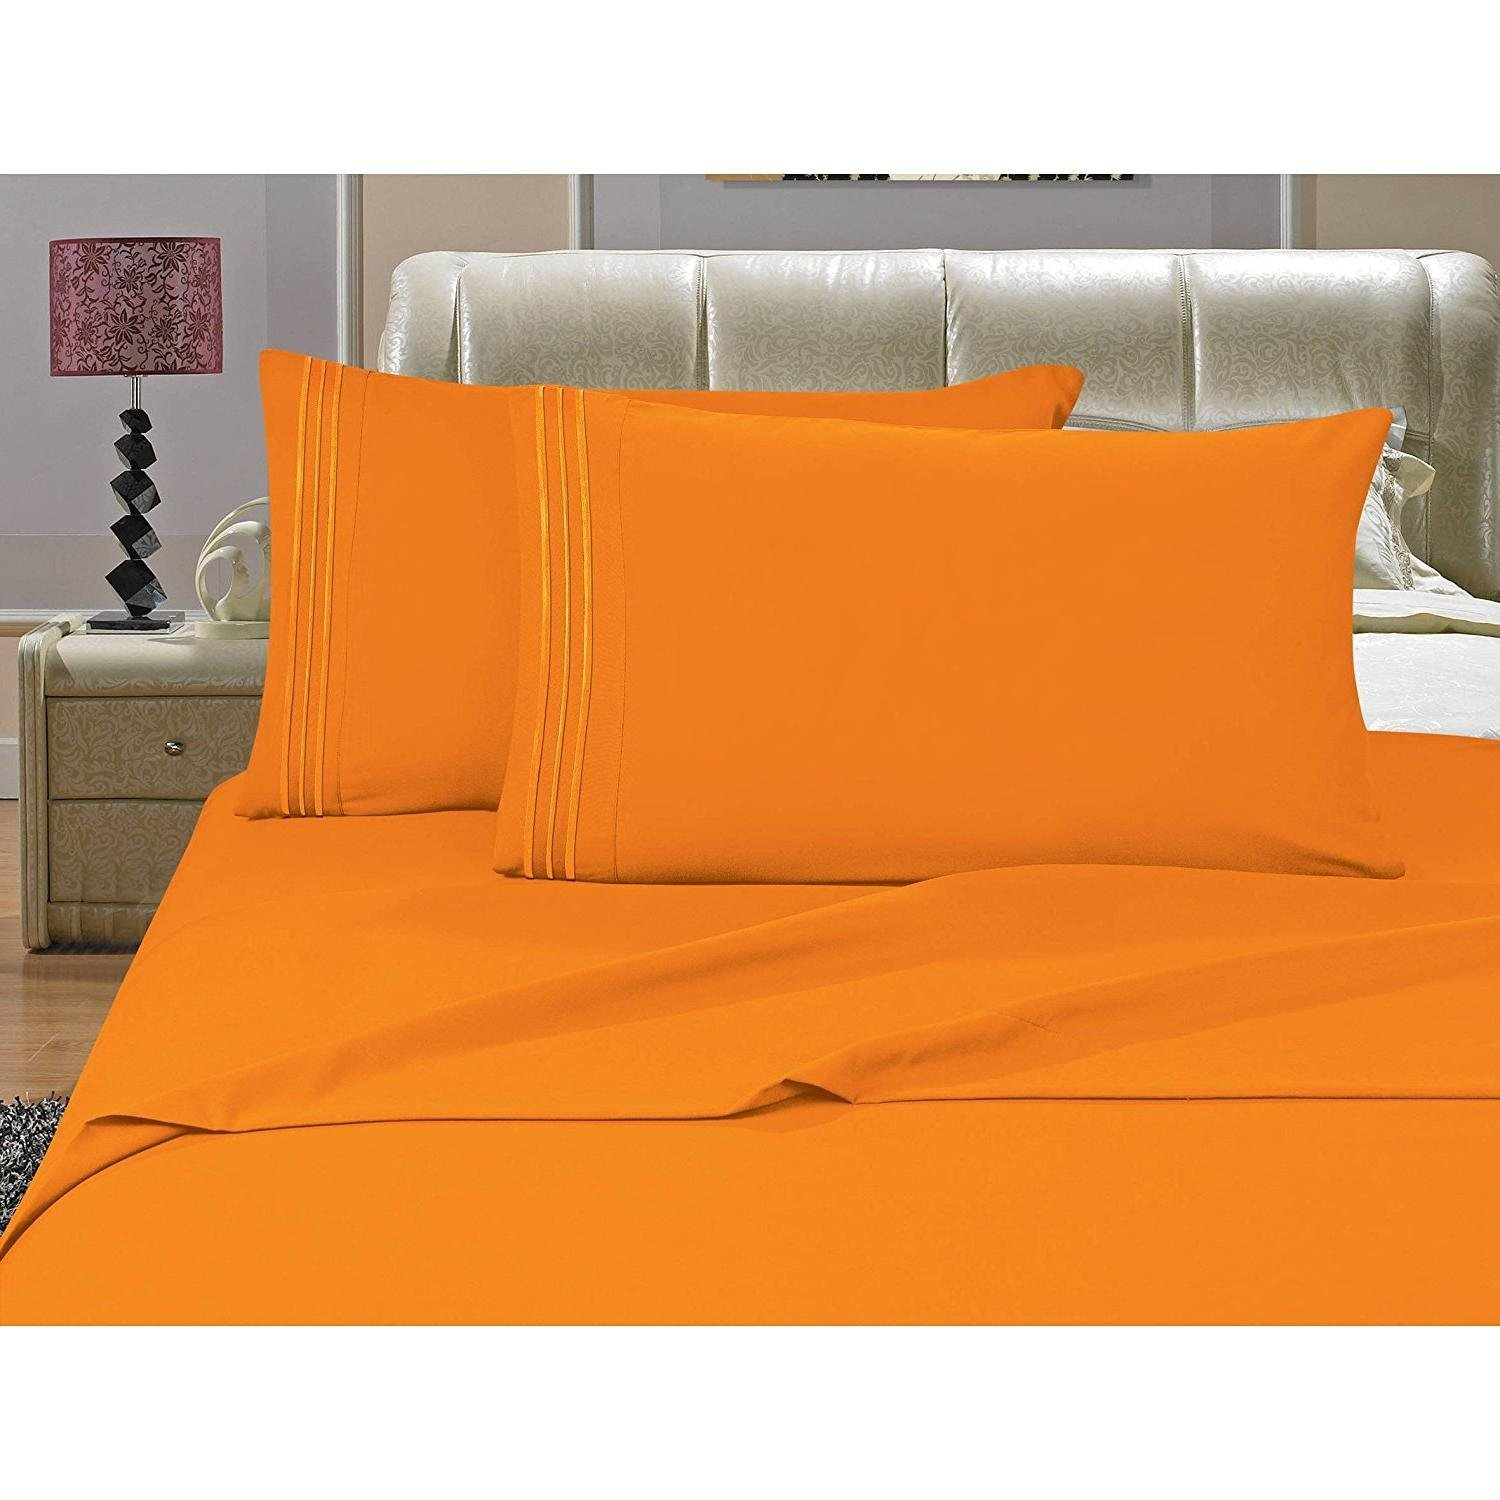 MISC 4pc Orange King Sheet Set, Deep Pocket Bedding Embroidered Stripe Comfortable Chic Elegant Solid Classic Breathable Soft Cozy Luxurious, Polyester, Microfiber